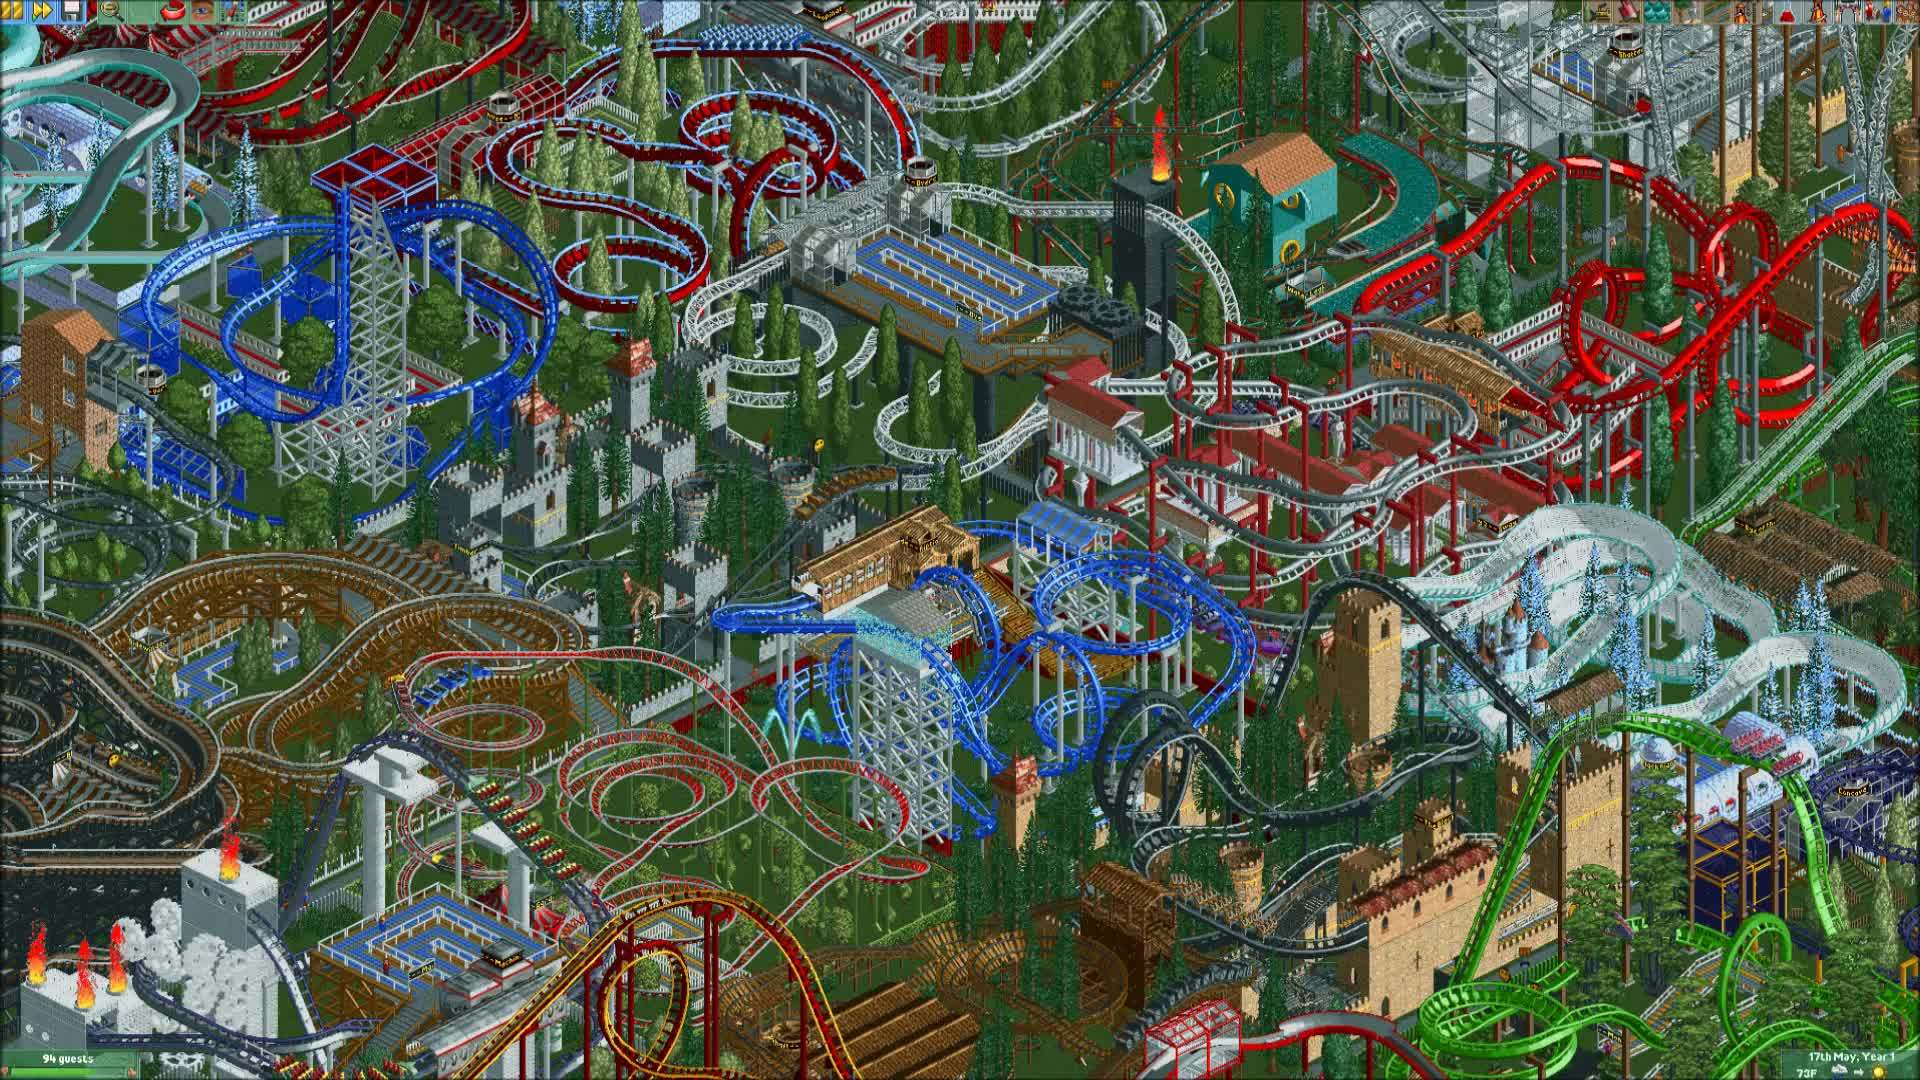 ▷ Roller Coaster Tycoon 2 Genocide GIF by kittyhat - Find